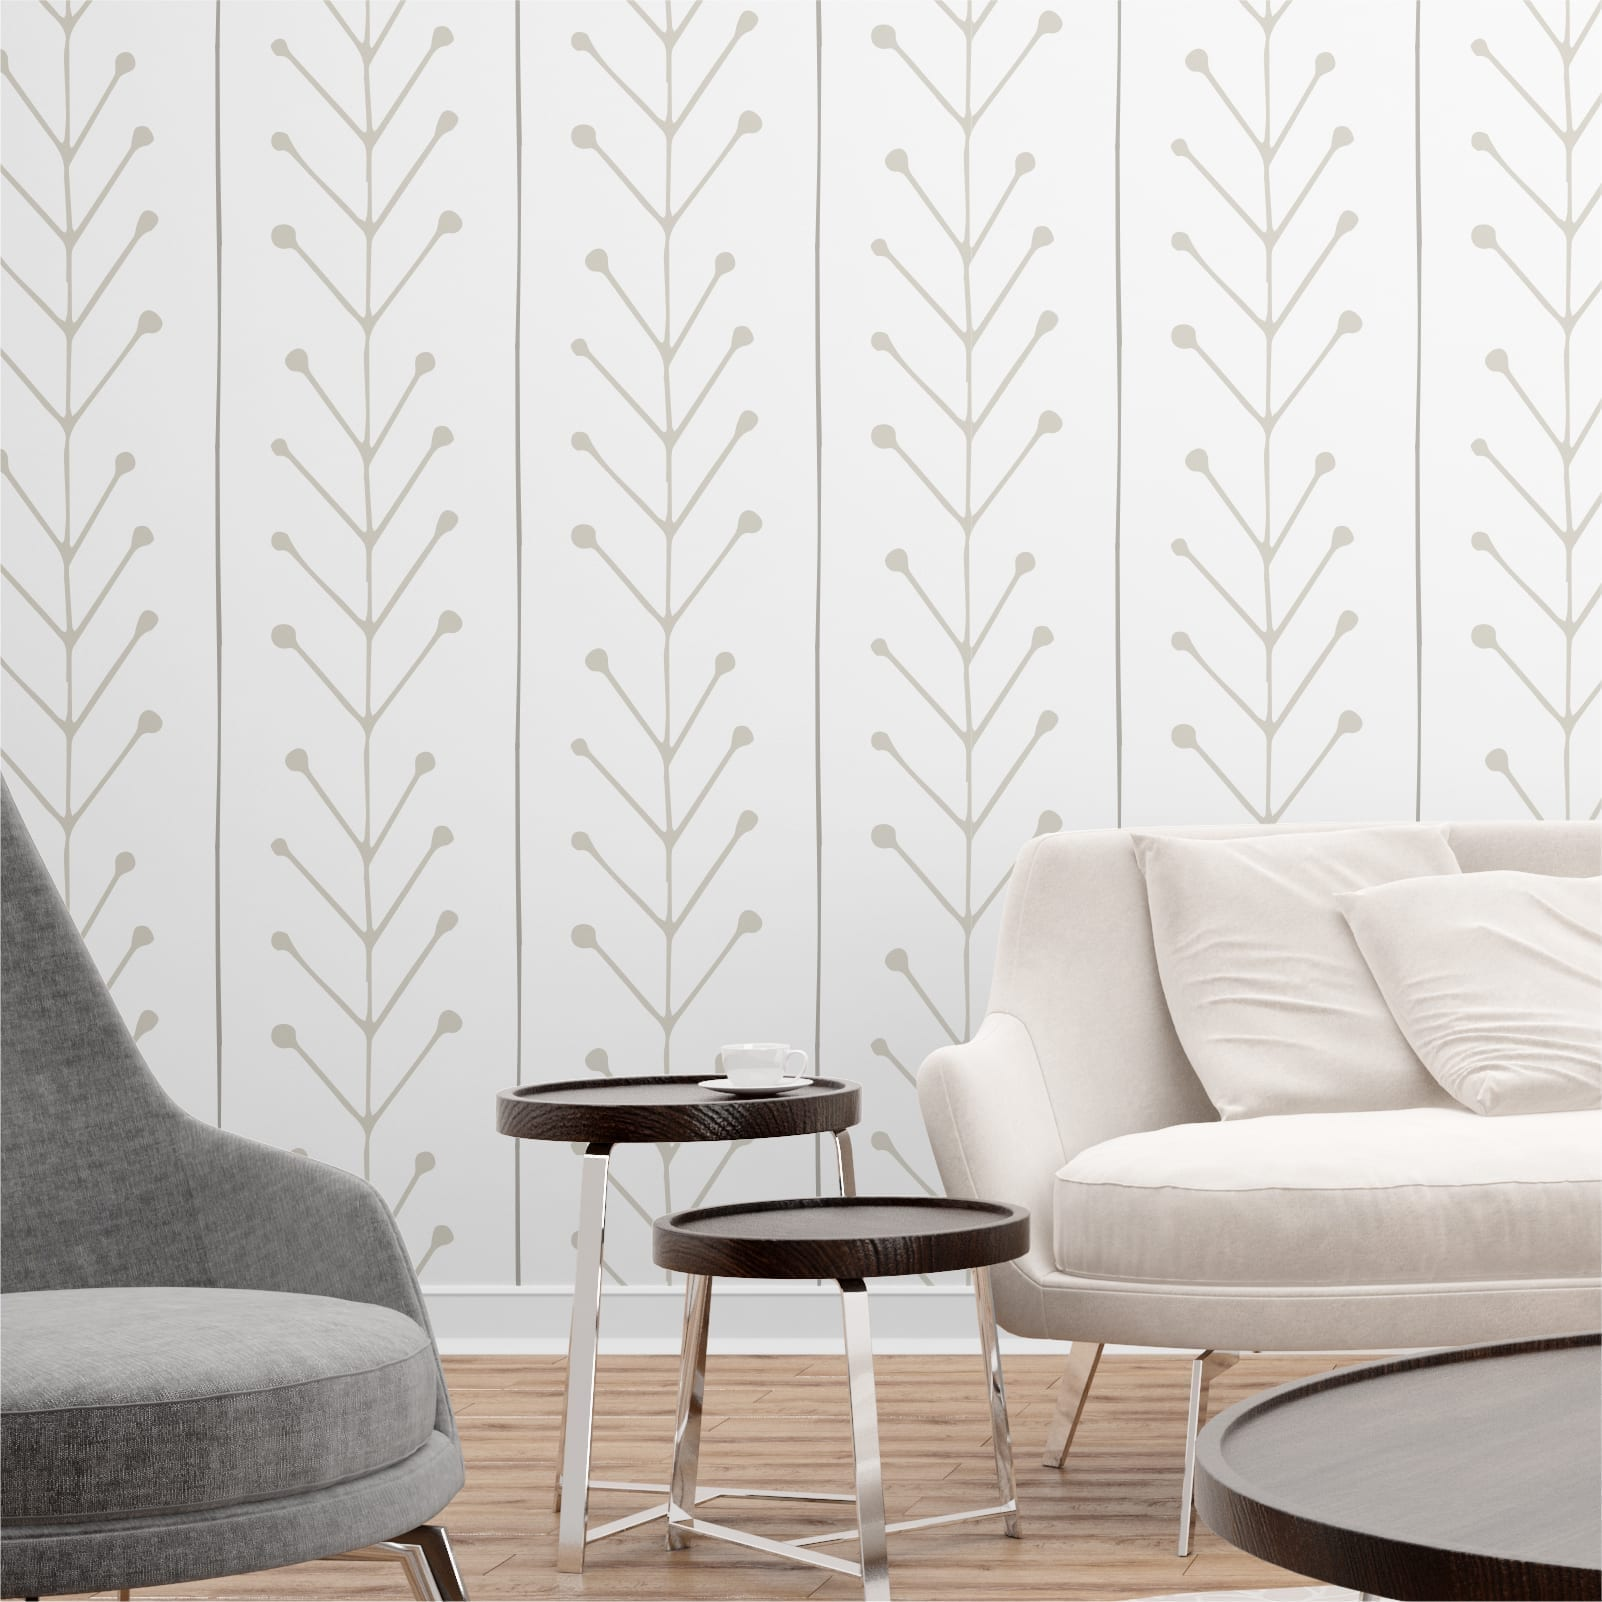 Scandinavian Minimalist Wallpaper